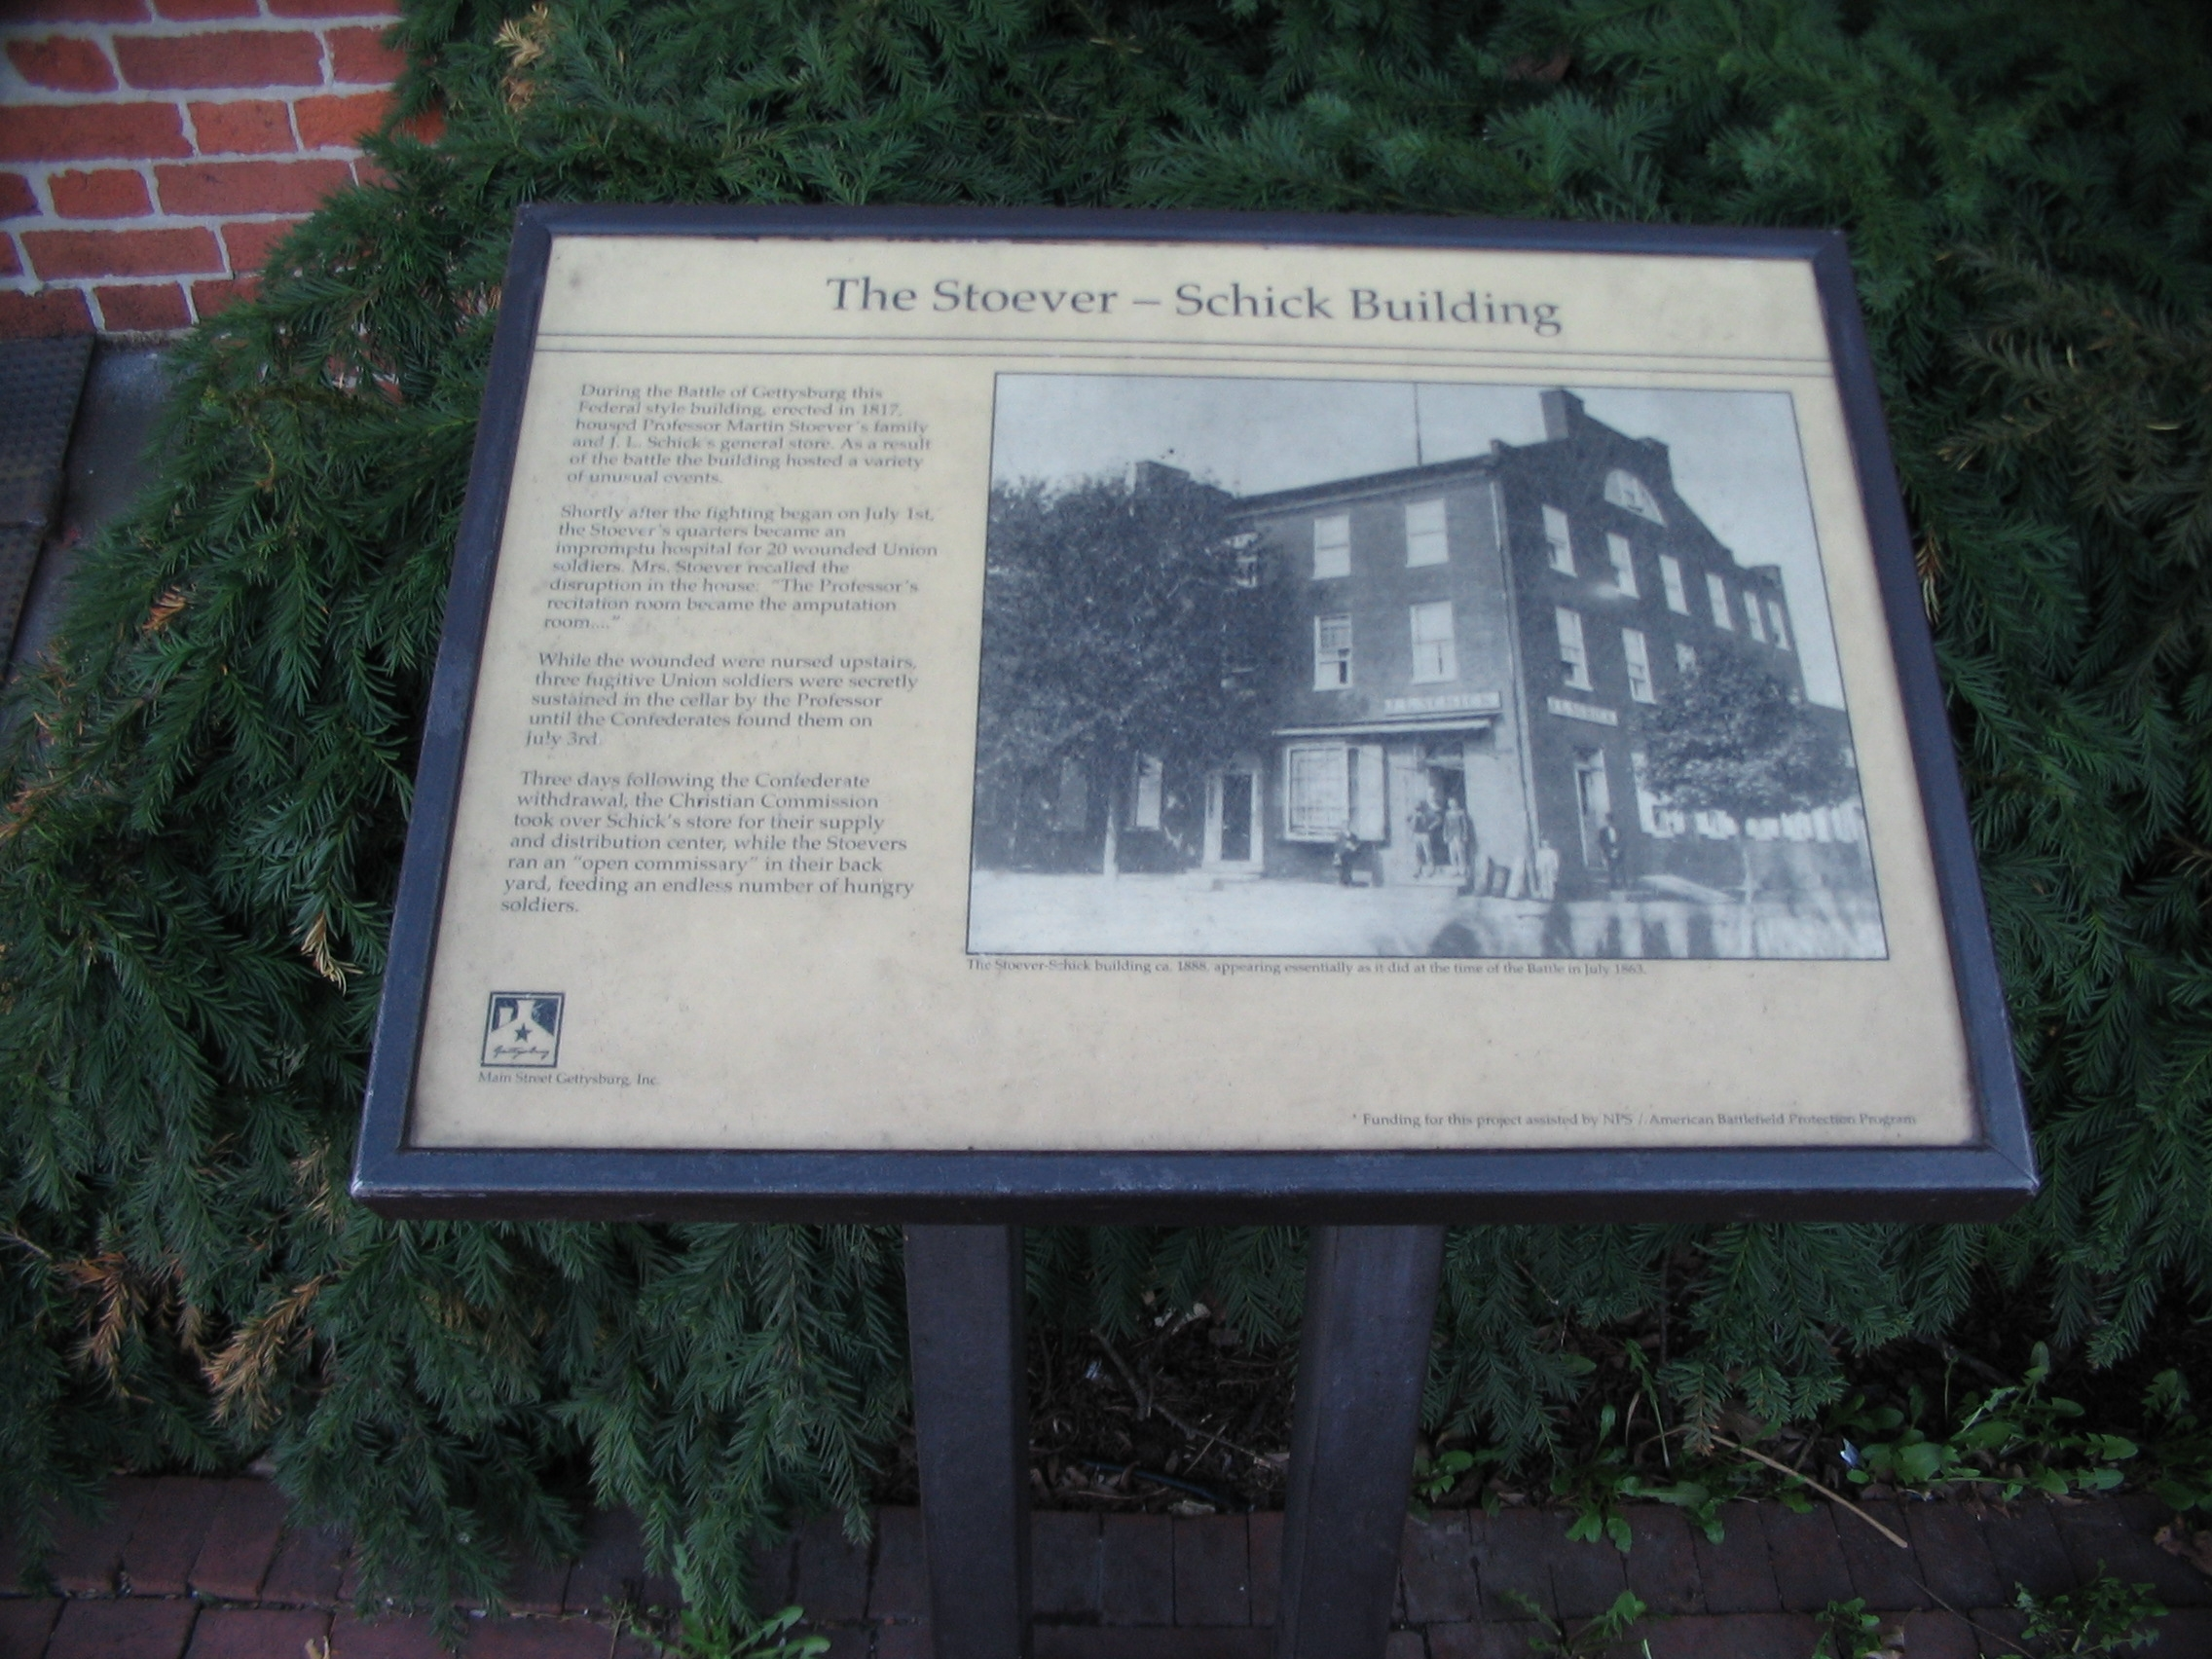 The Stoever - Schick Building Marker